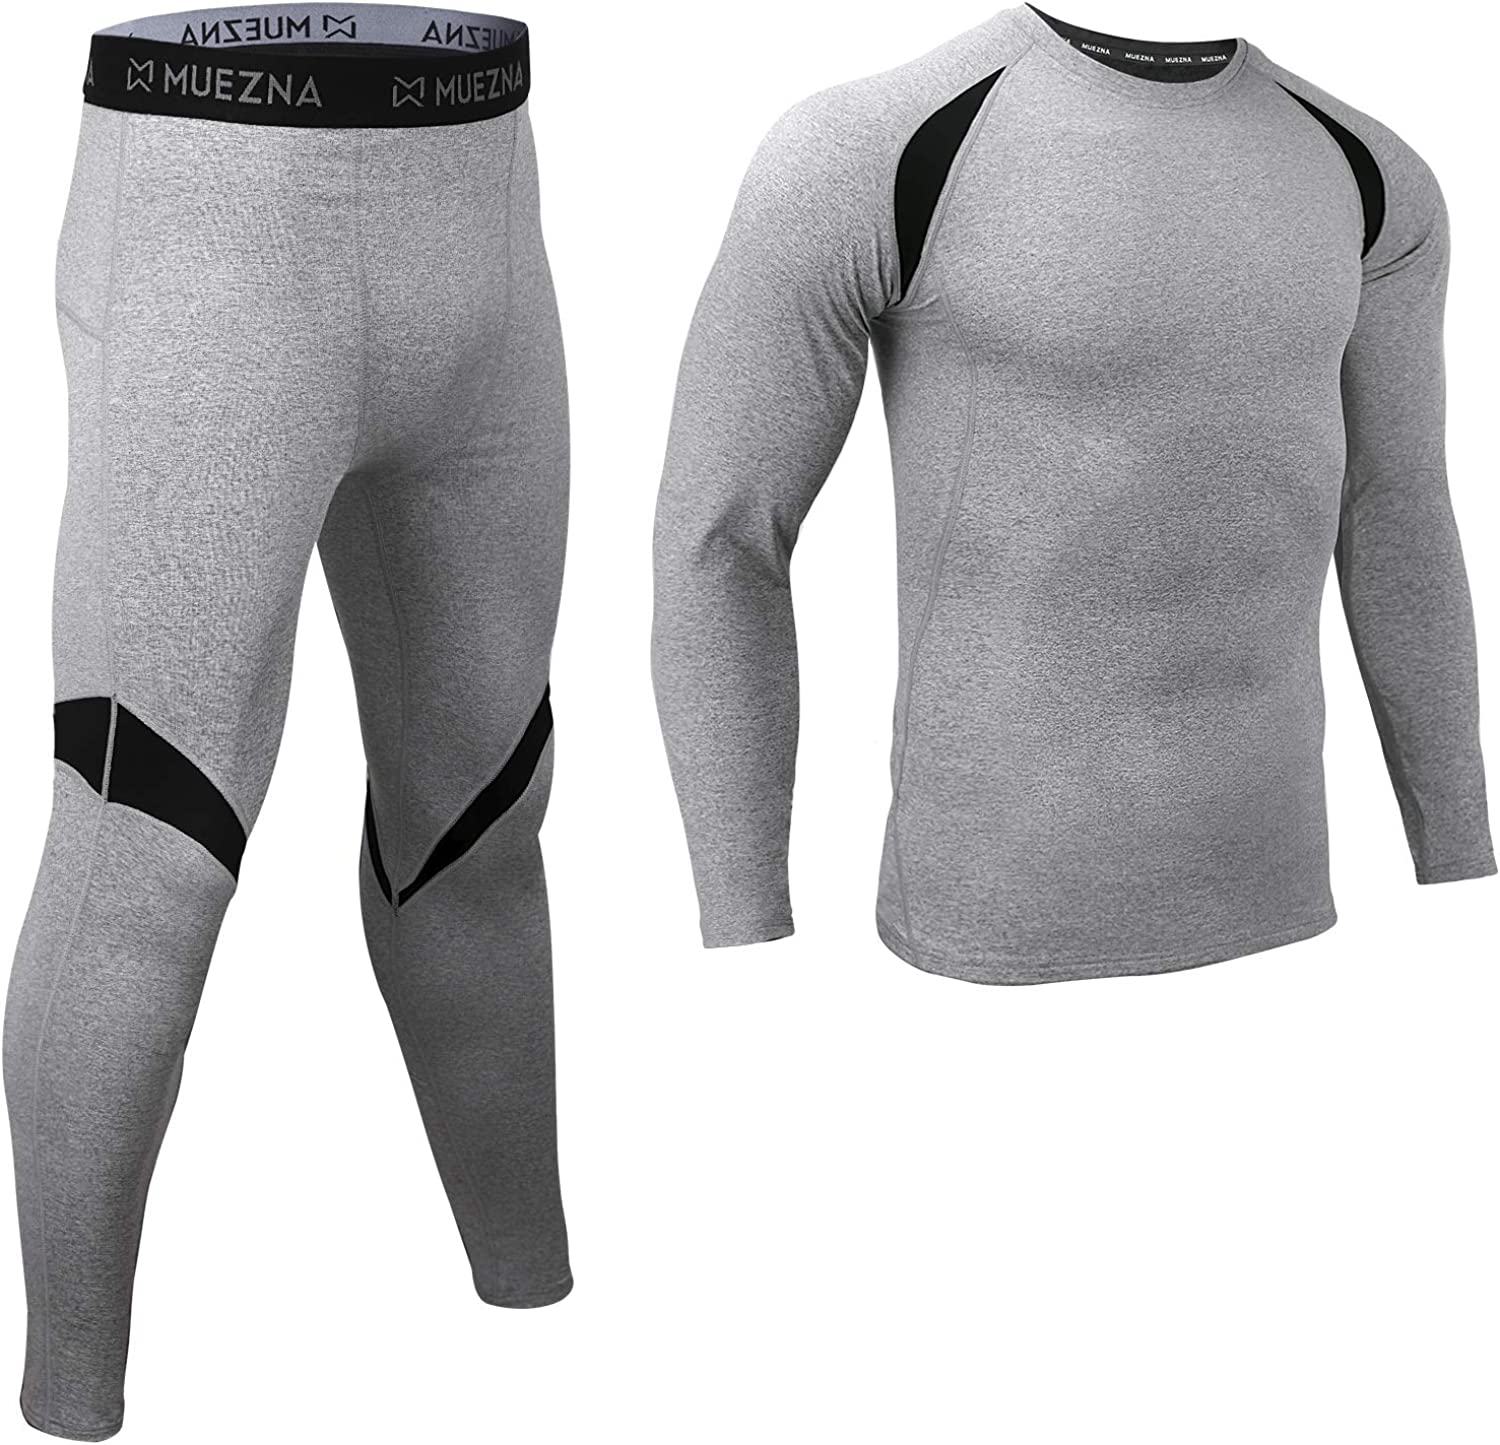 Men's Thermal Top and Bottom Set Underwear Long Johns Base Layer with Soft Fleece Lined at  Men's Clothing store